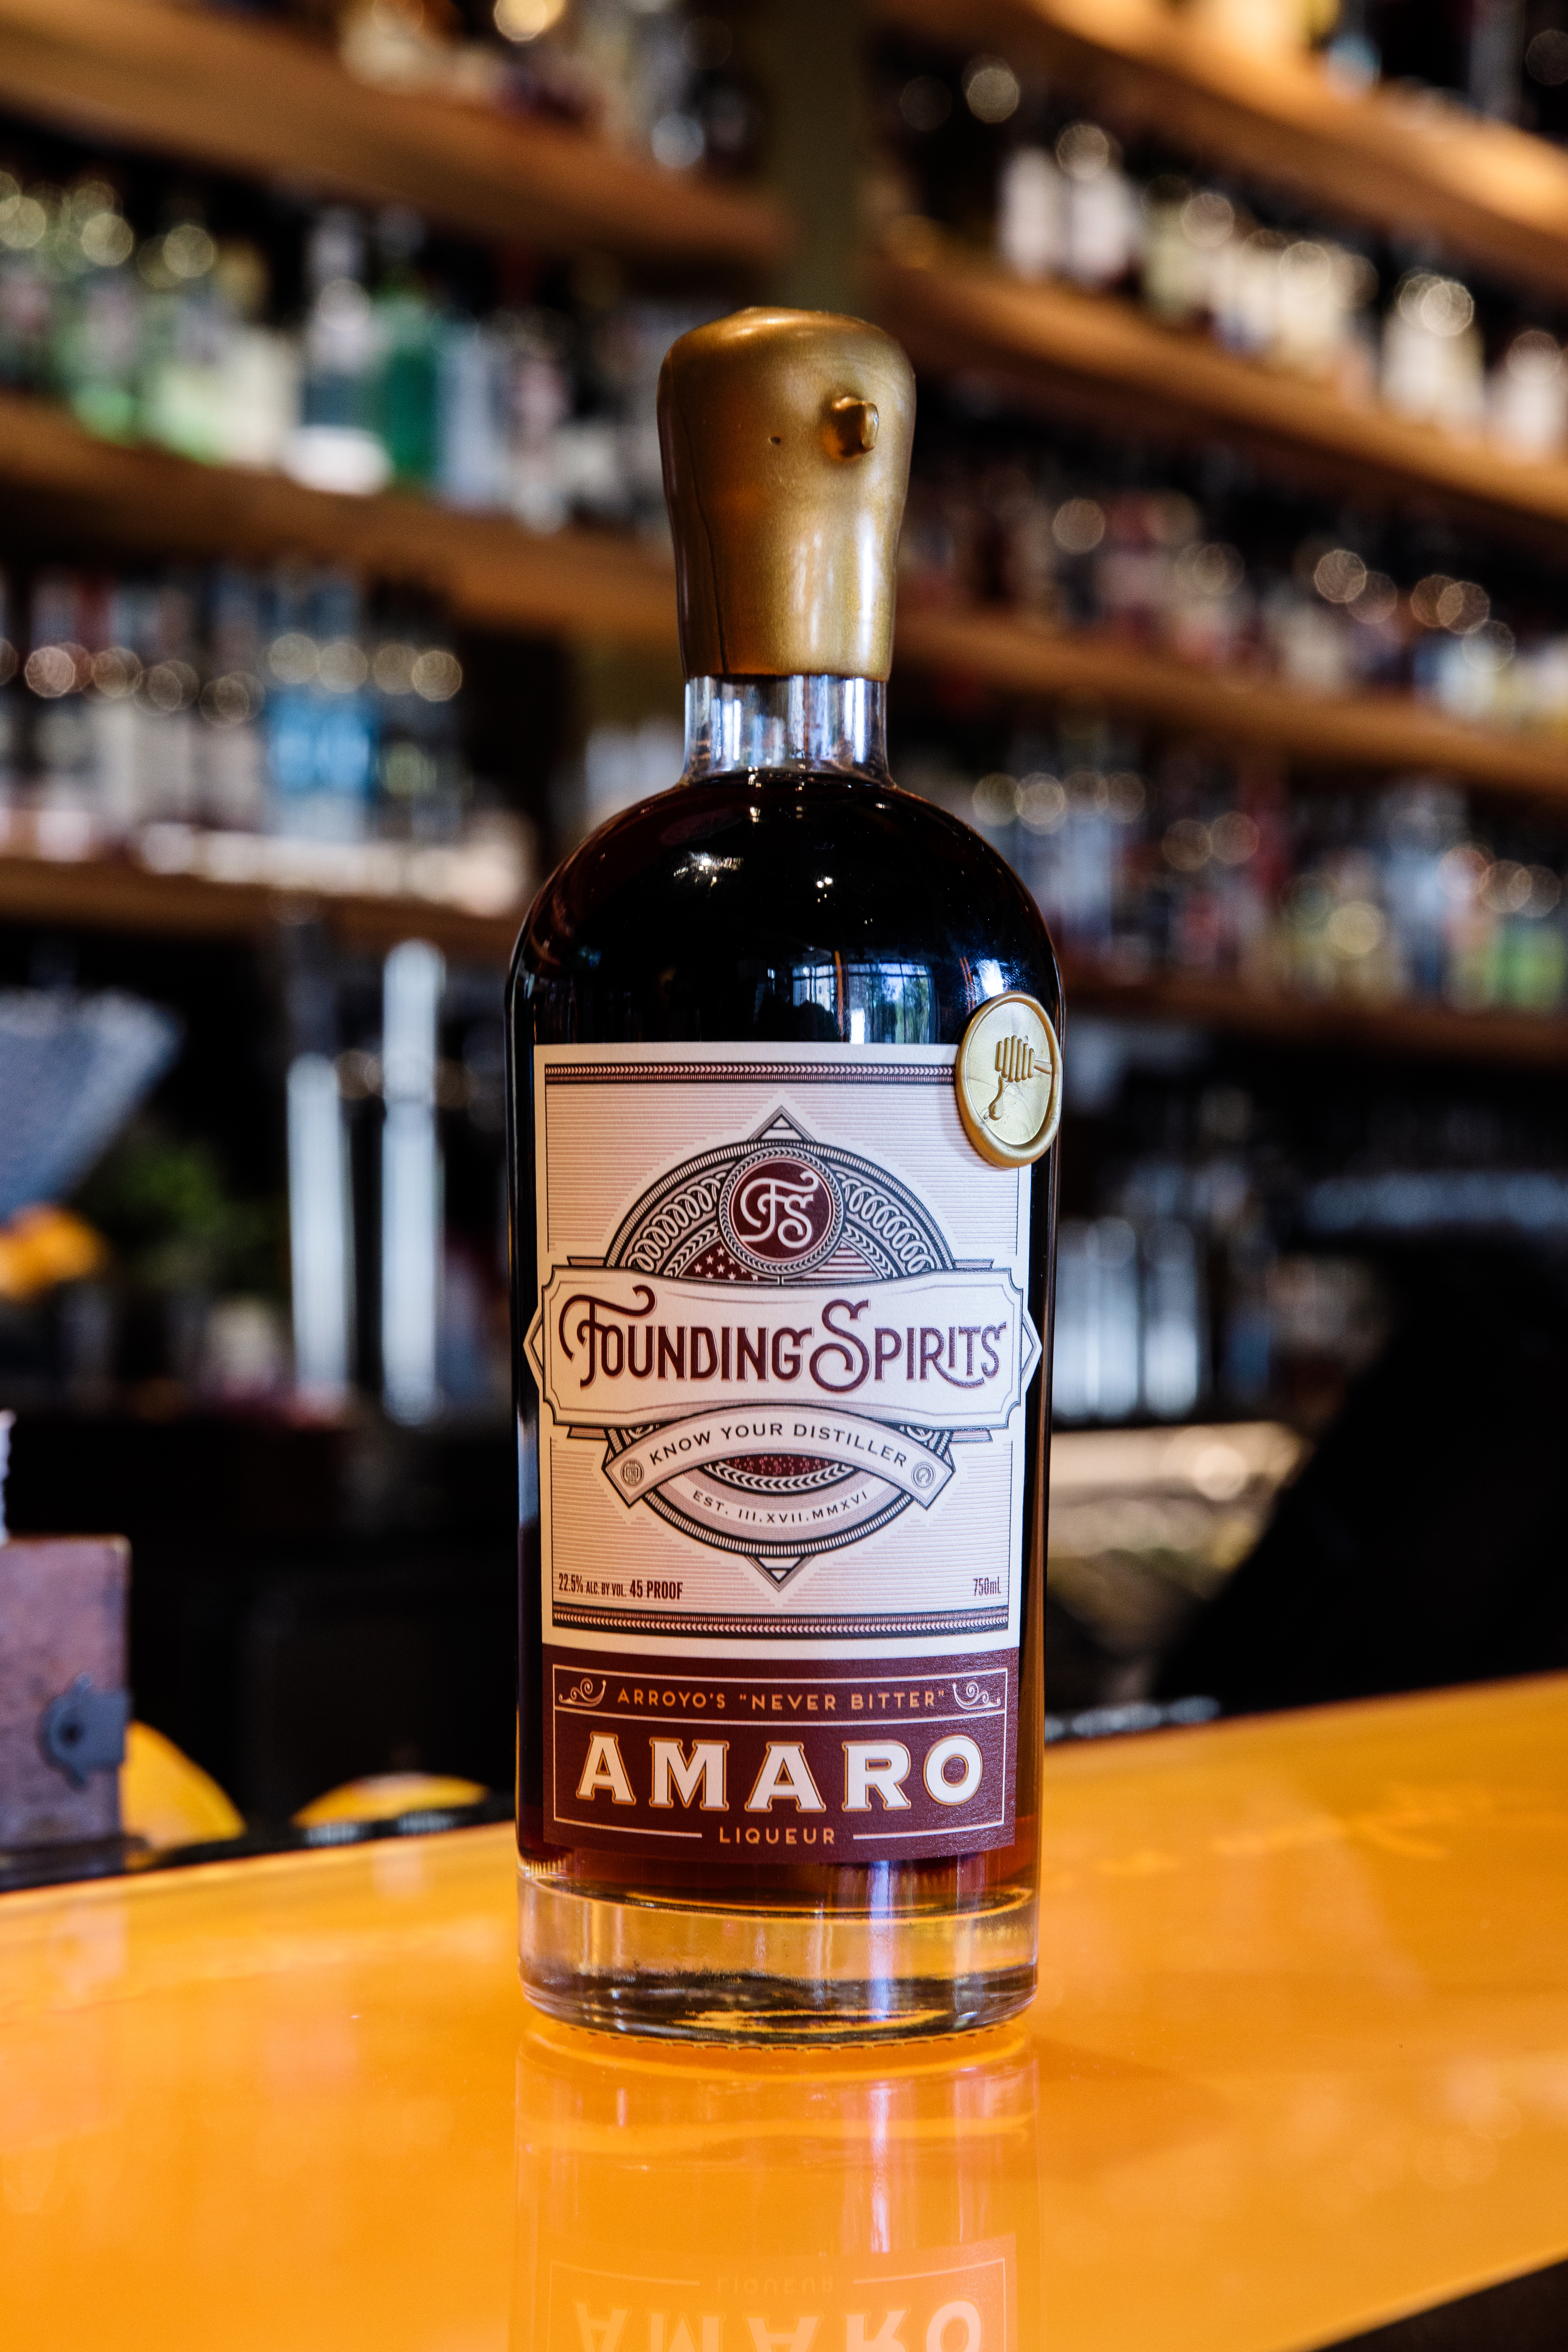 GW Limited Edition Amaro from Founding Spirits // Price: $60 // Buy online // www.foundingspirits.com // (Image: Founding Spirits)